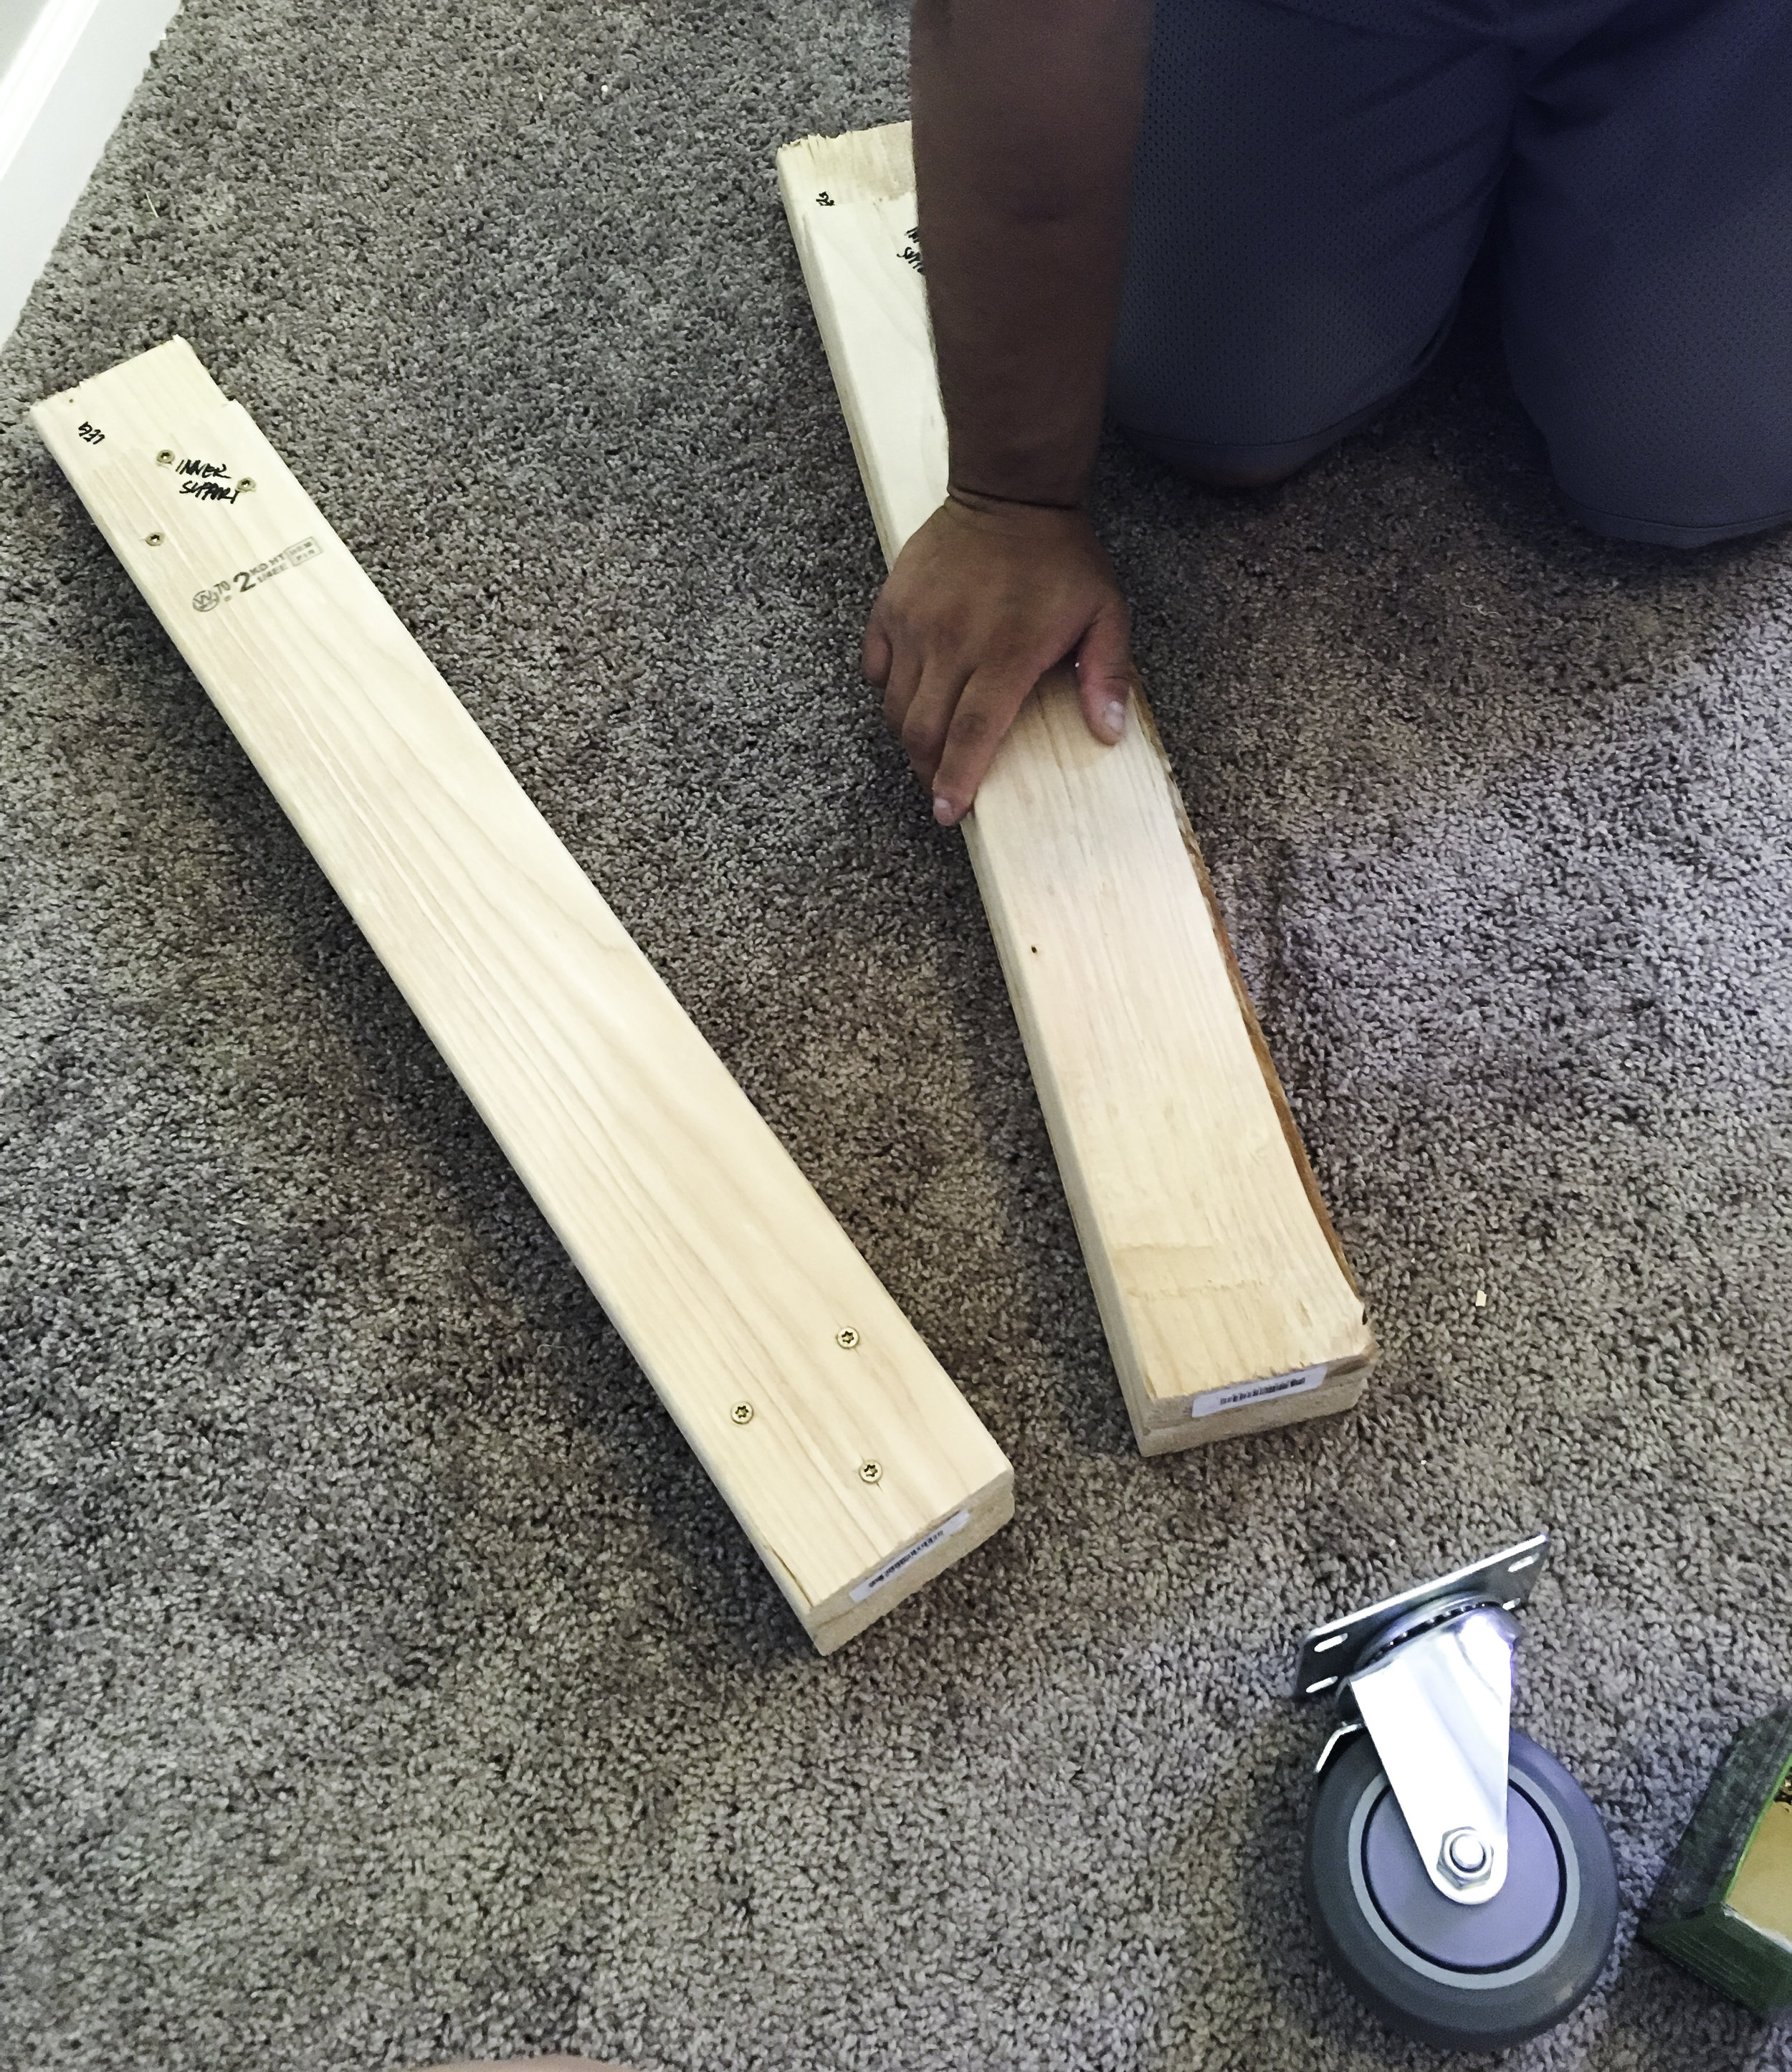 We screwed the table legs and leg supports together with 3 screws at each side.